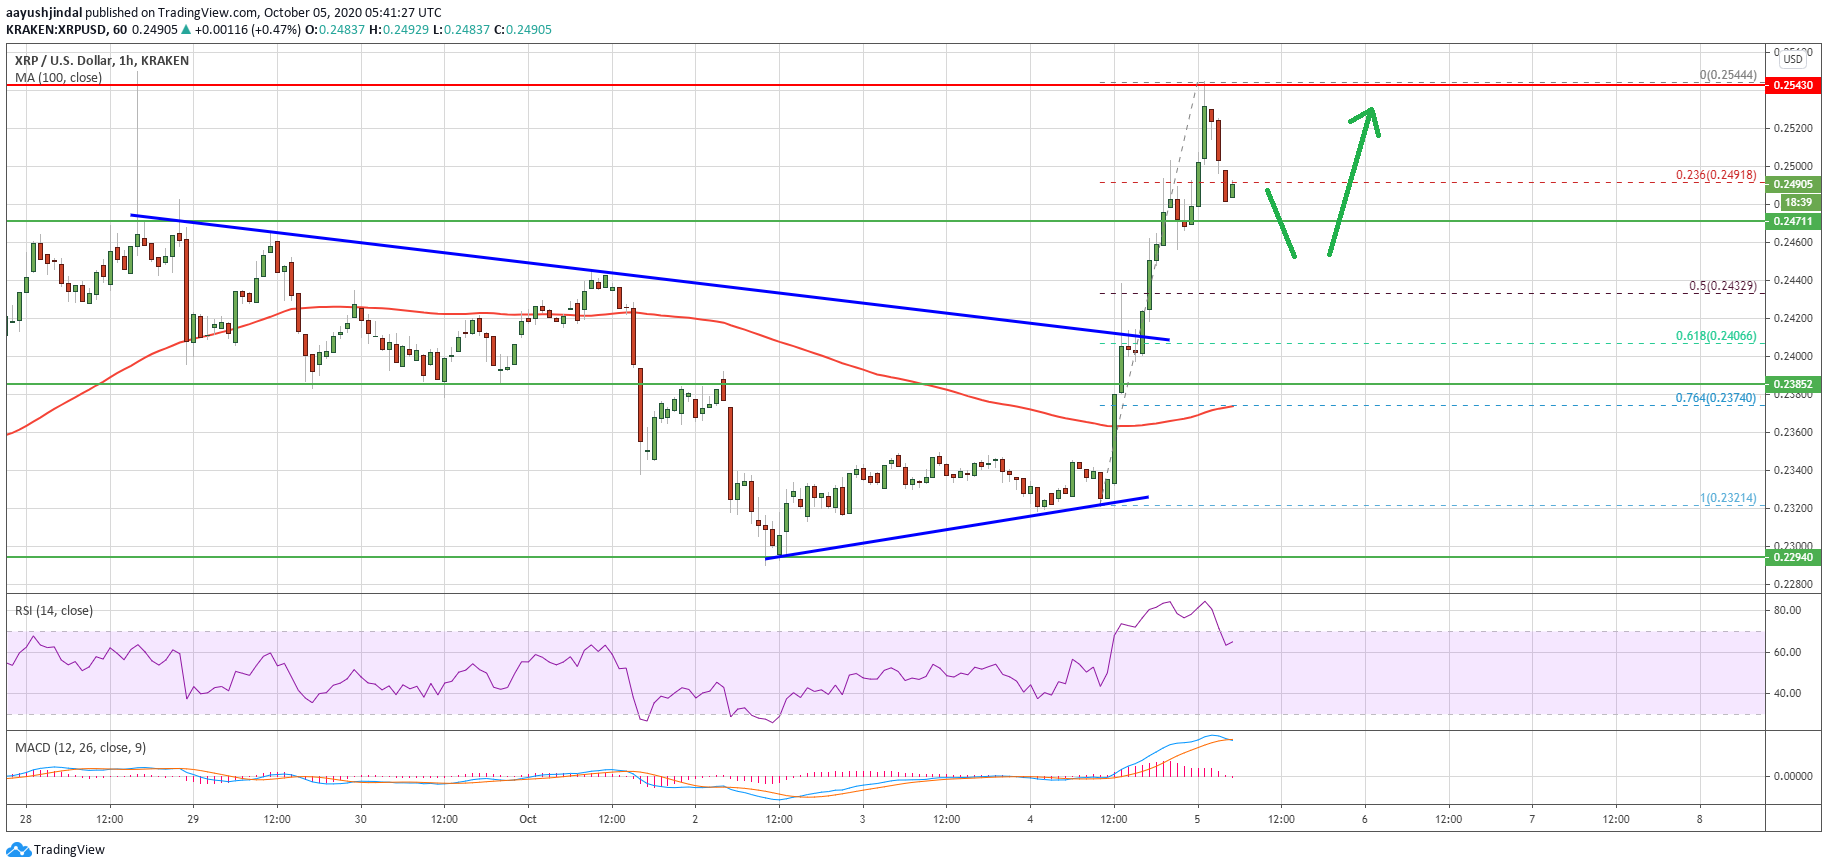 Ripple (XRP) Price Rally Runs Into Significant Resistance: $0.255 Holds The Key